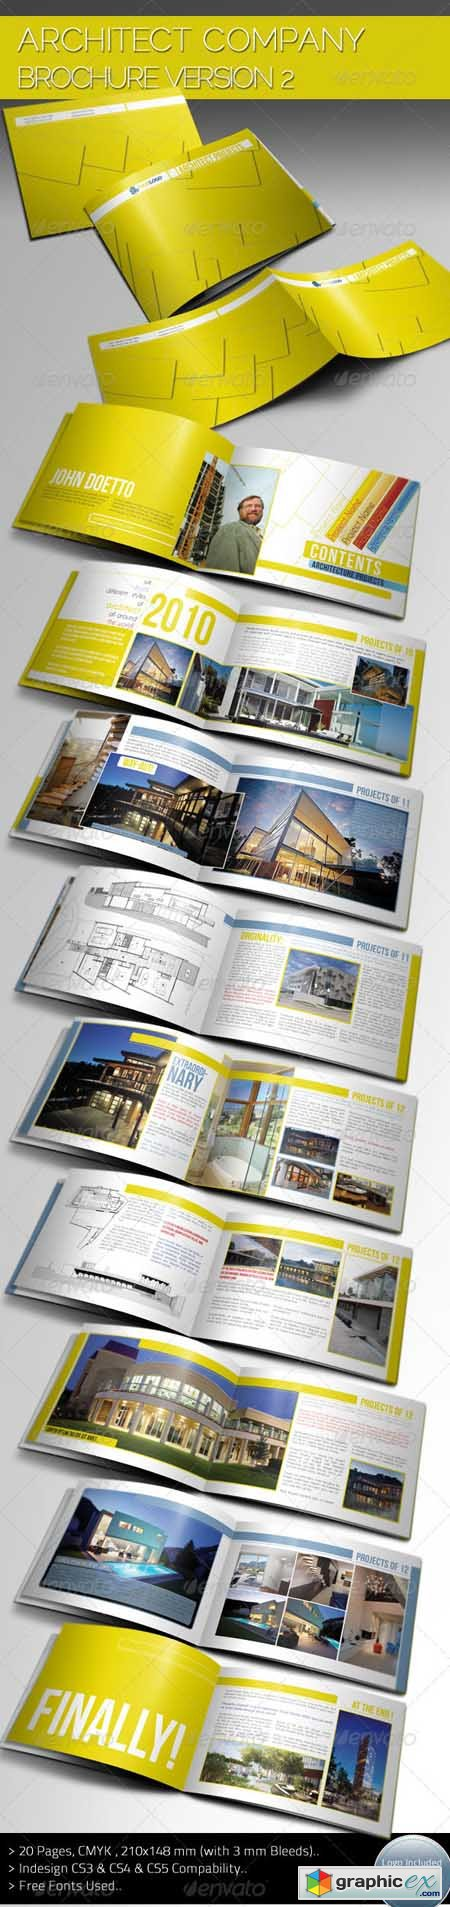 Architecture Brochure Template Ver.II